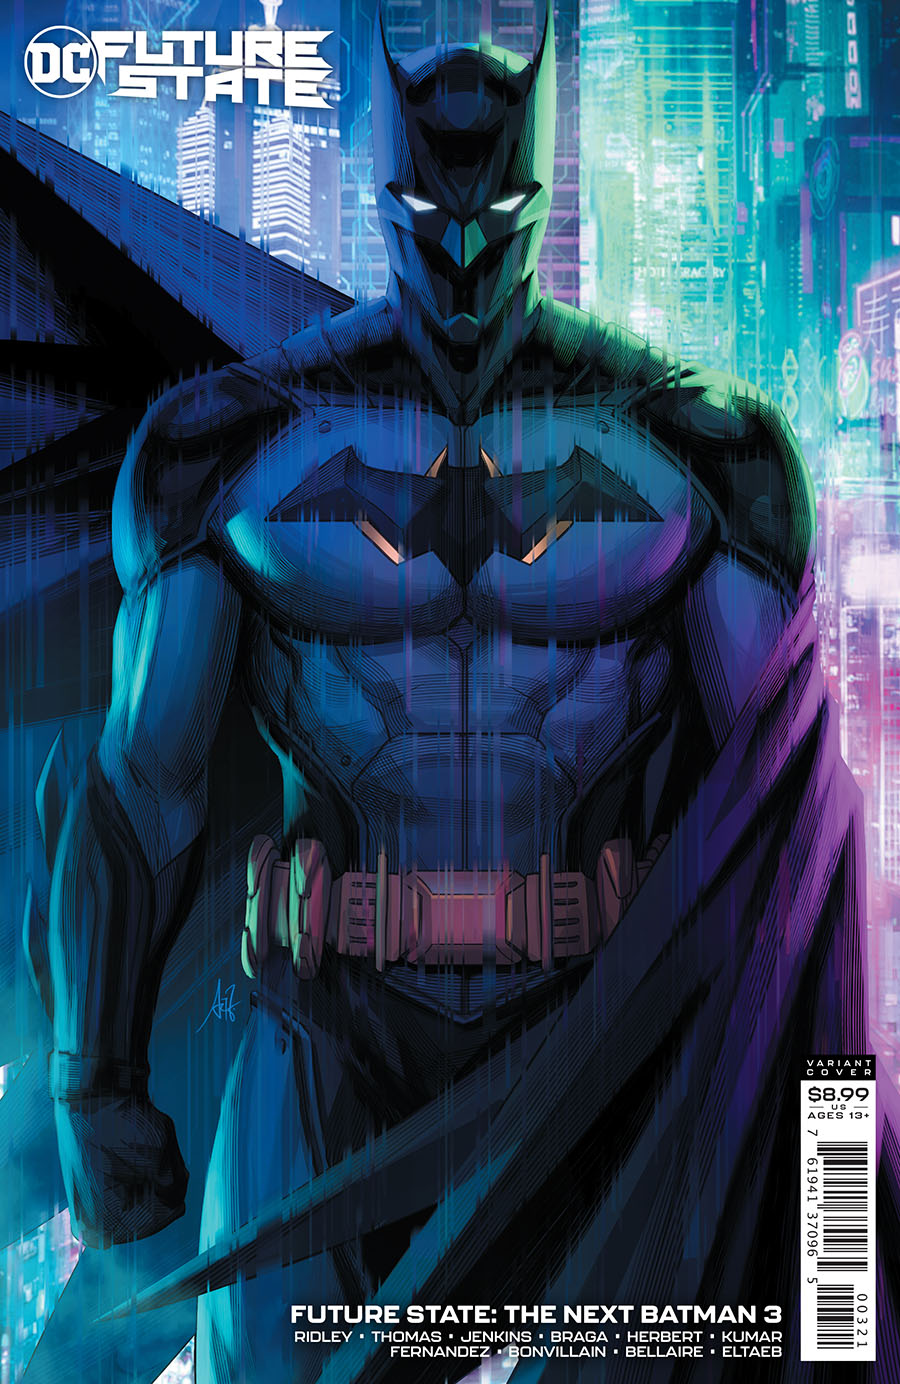 Future State The Next Batman #3 Cover B Variant Stanley Artgerm Lau Card Stock Cover